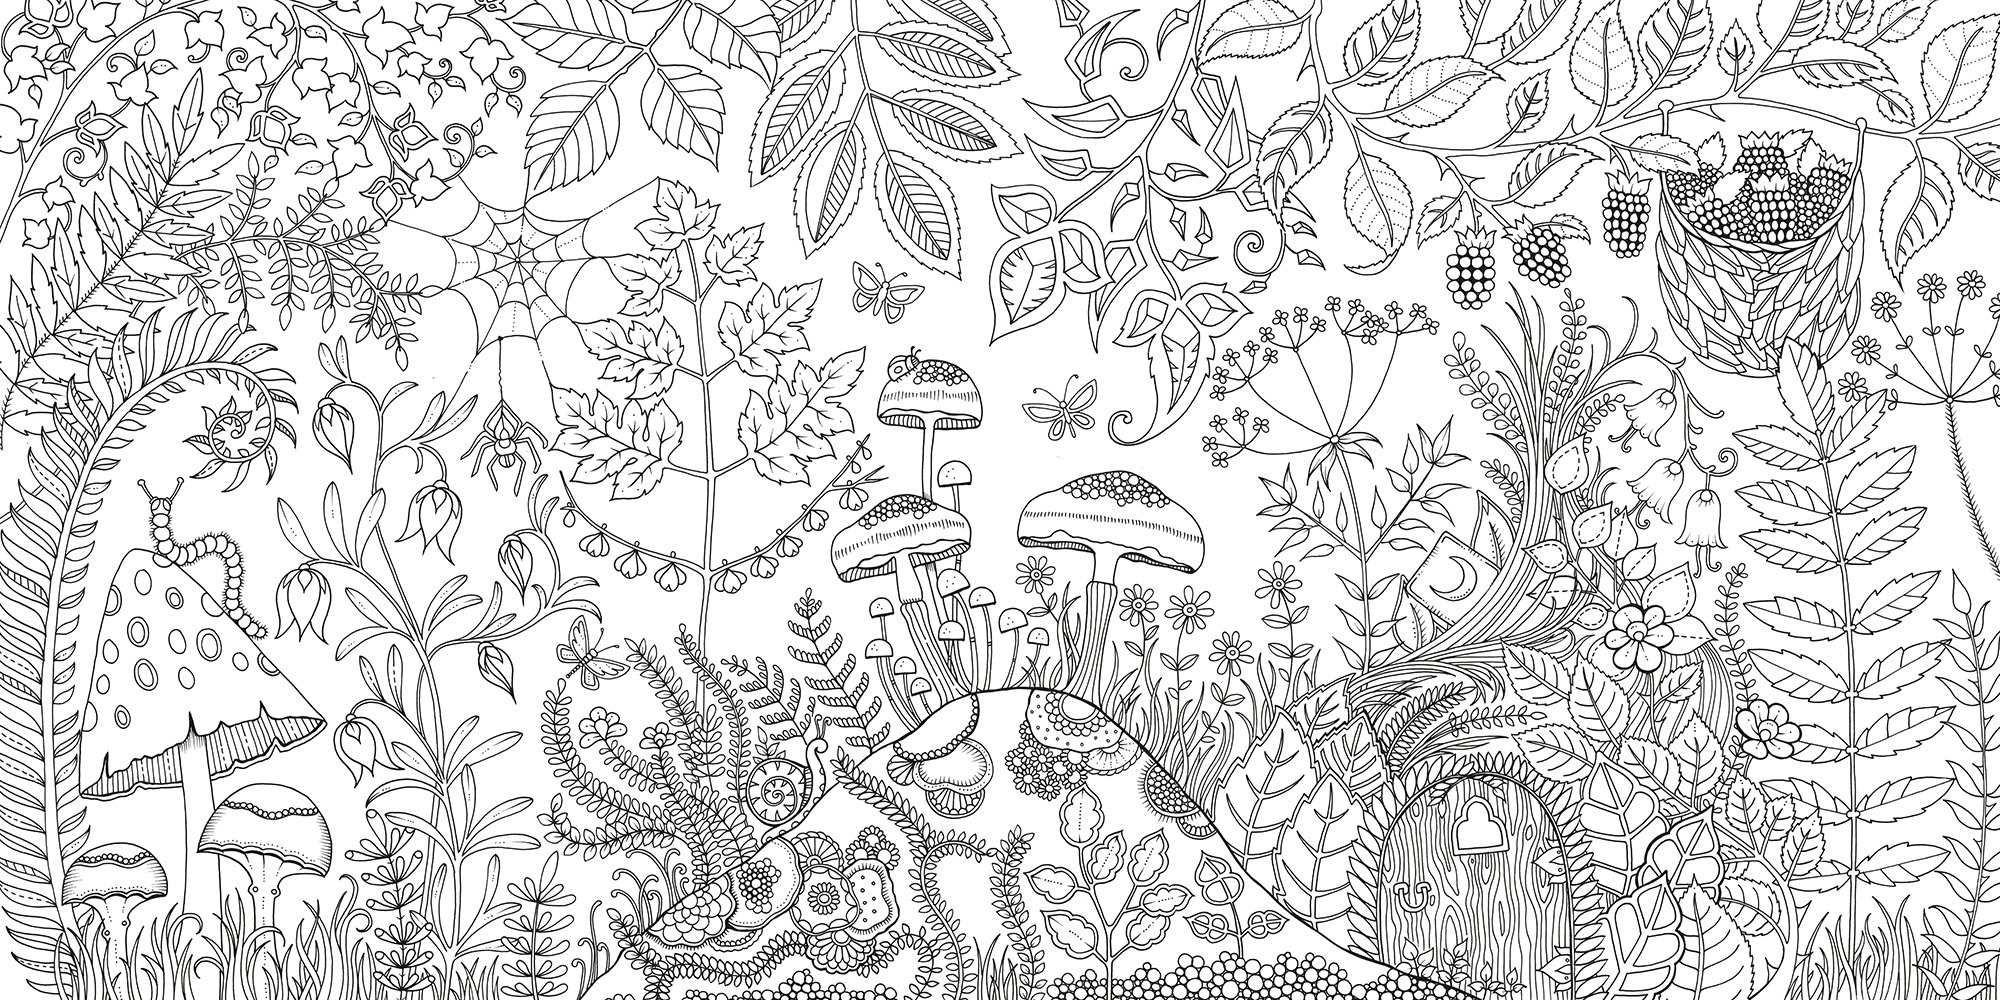 Product DescriptionLast Updated 12 5 2015 113215 PM Enchanted Forest An Inky Quest Coloring Book